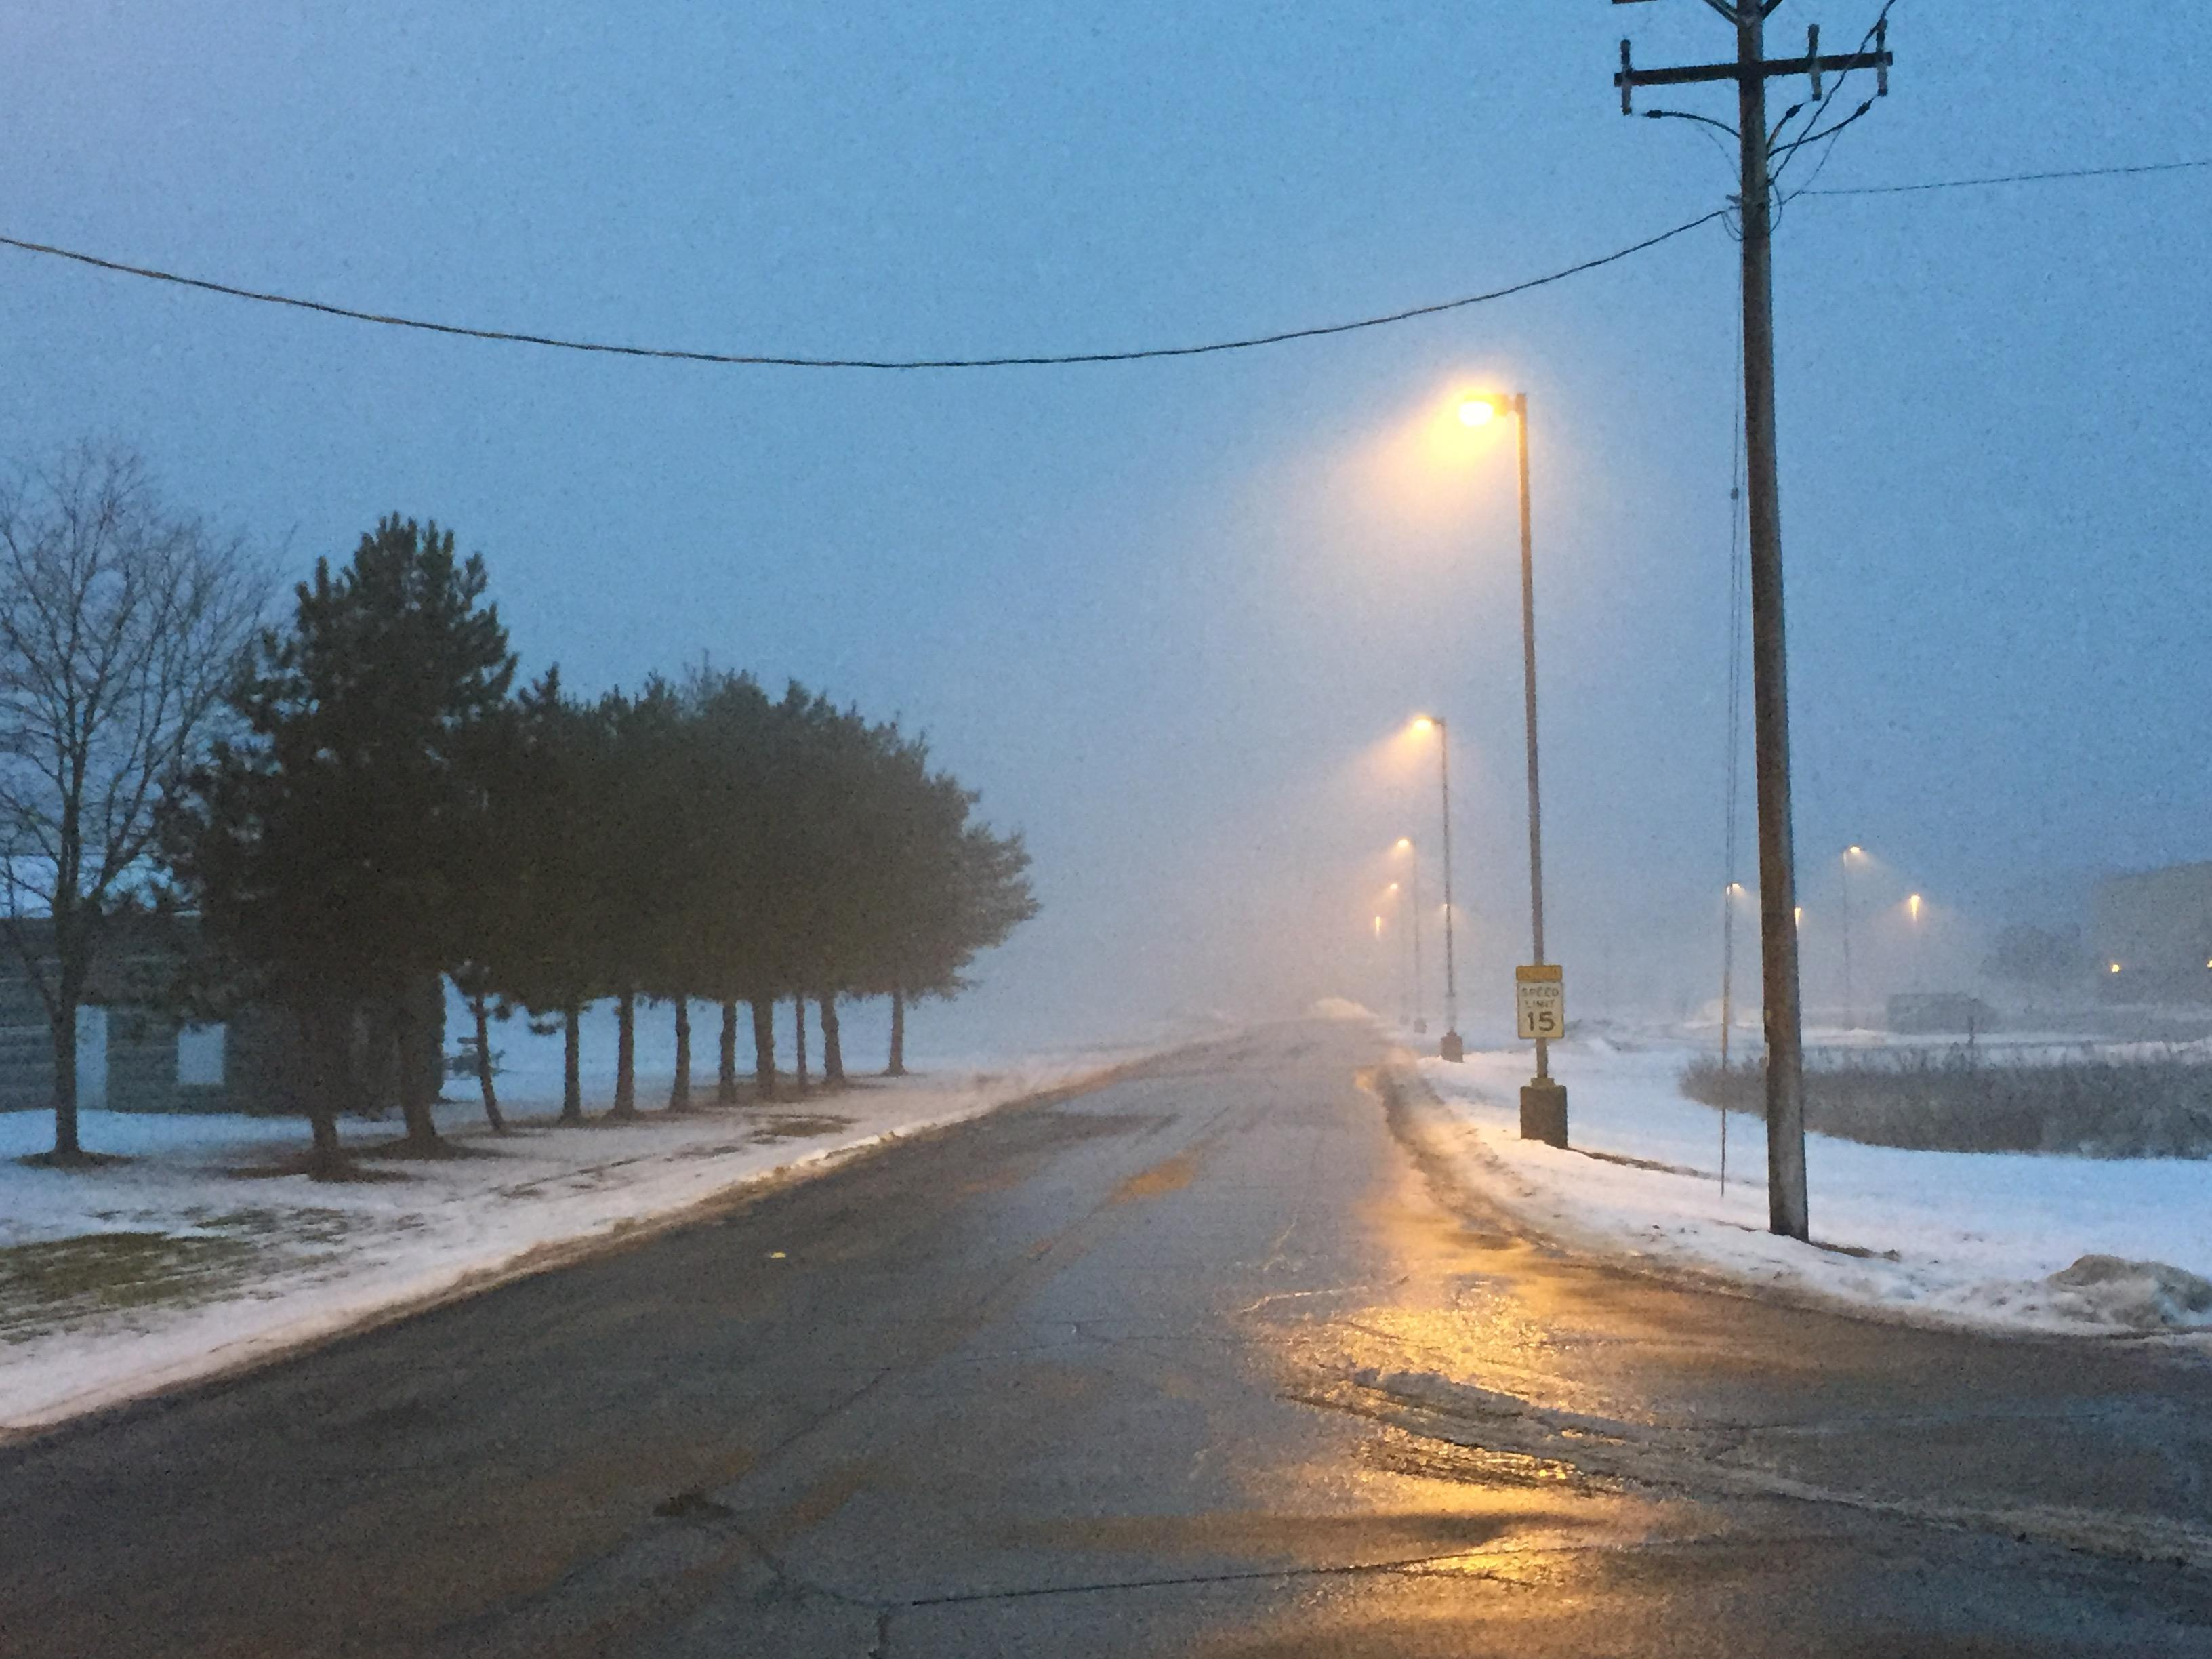 Fog and icy roads greet people in Crivitz the morning of Jan. 11, 2018. (WLUK/Jerry Van Handel)